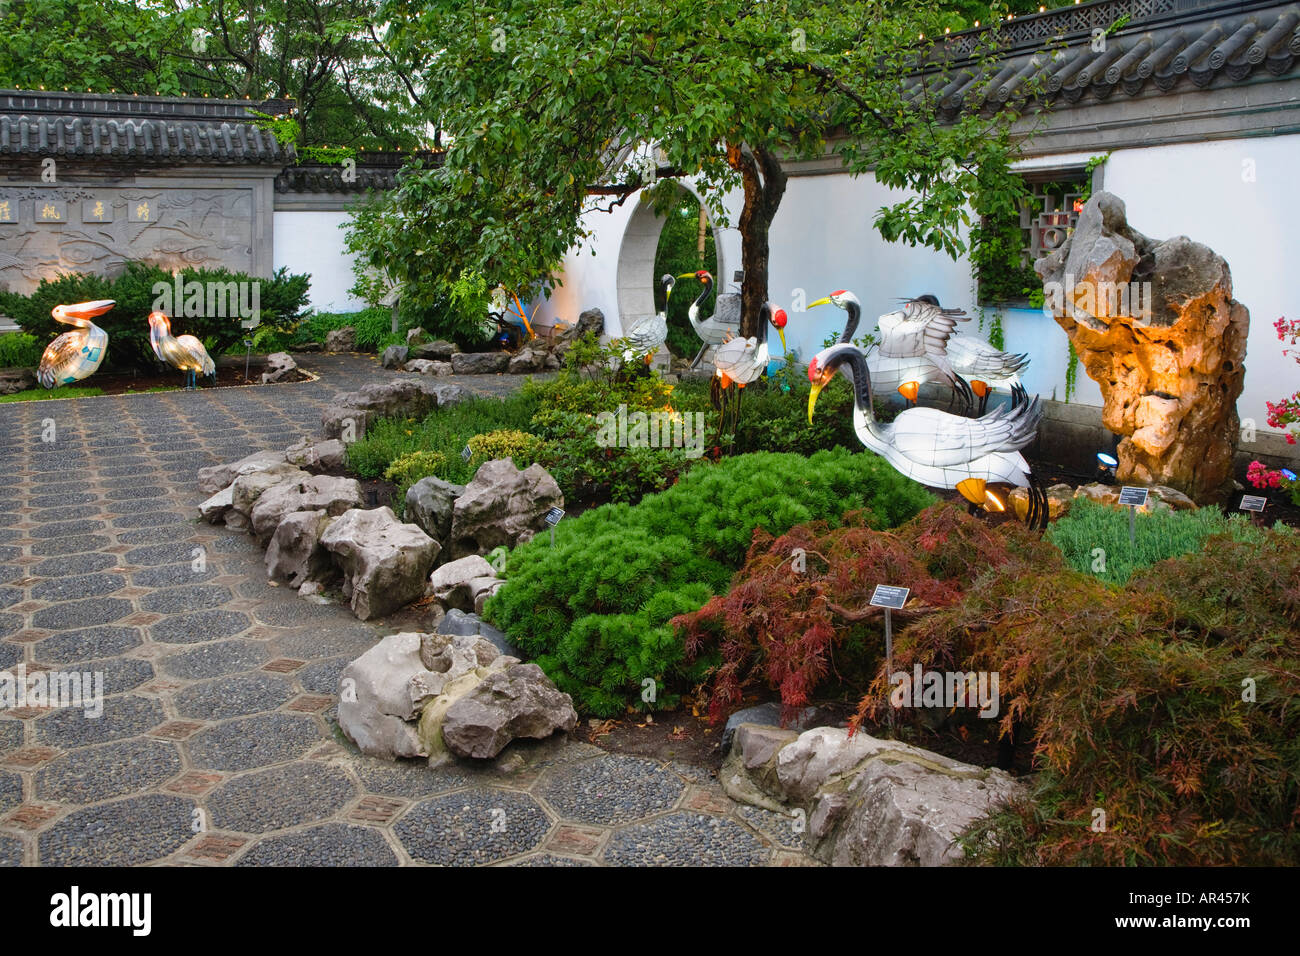 Chinese Garden Ornaments Along A Walkway In The Chinese Garden At